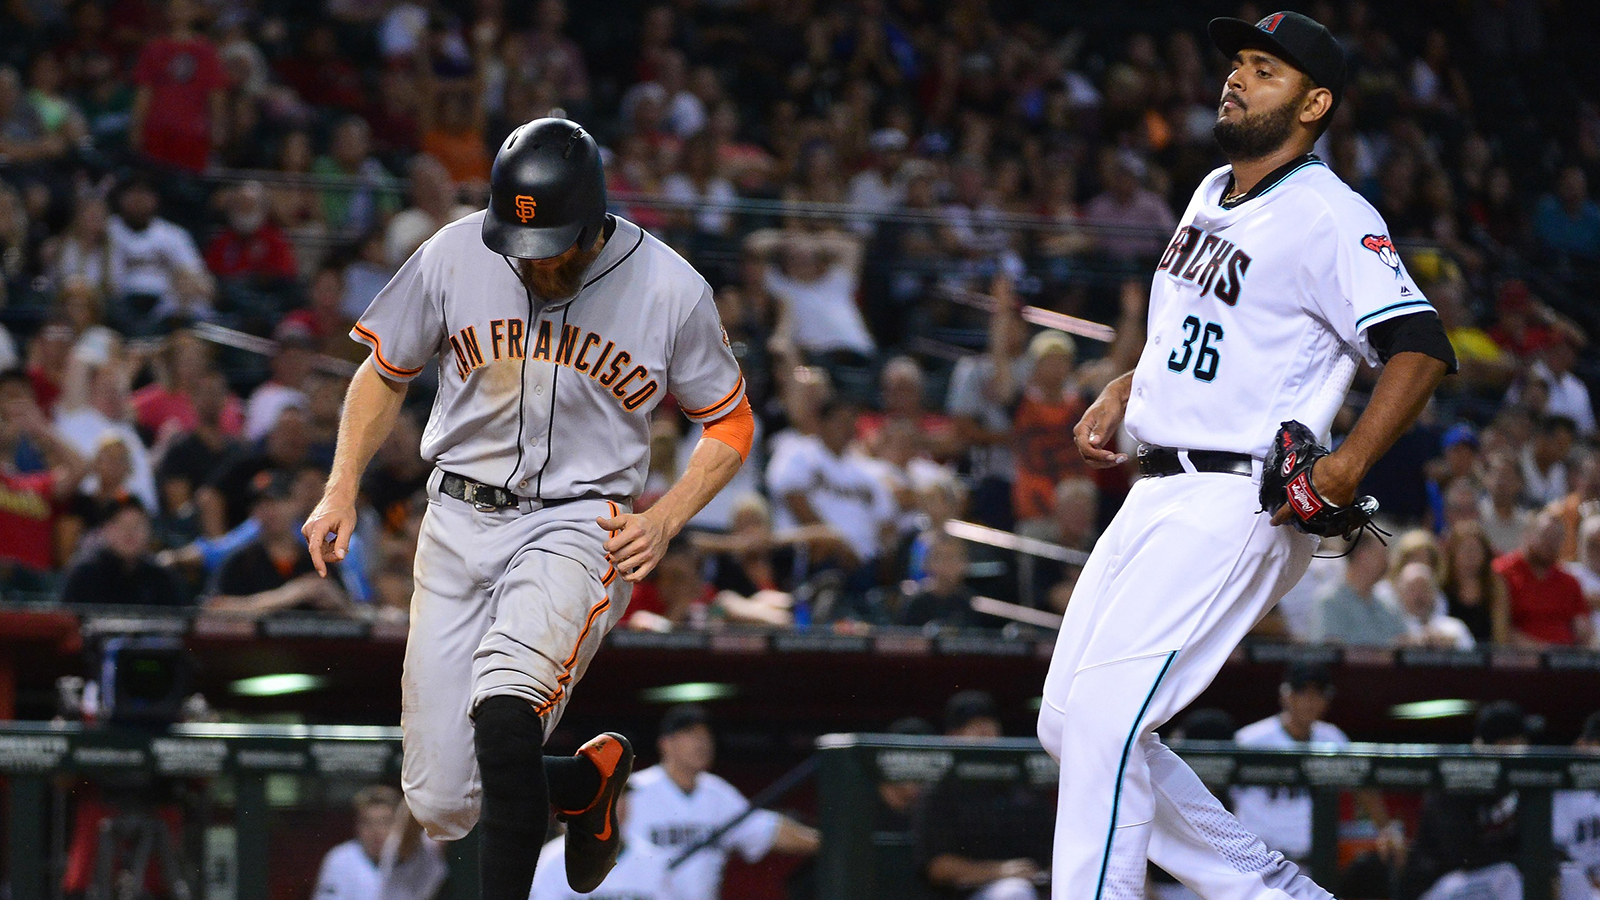 D-backs blow lead, lose to Giants in 12 innings